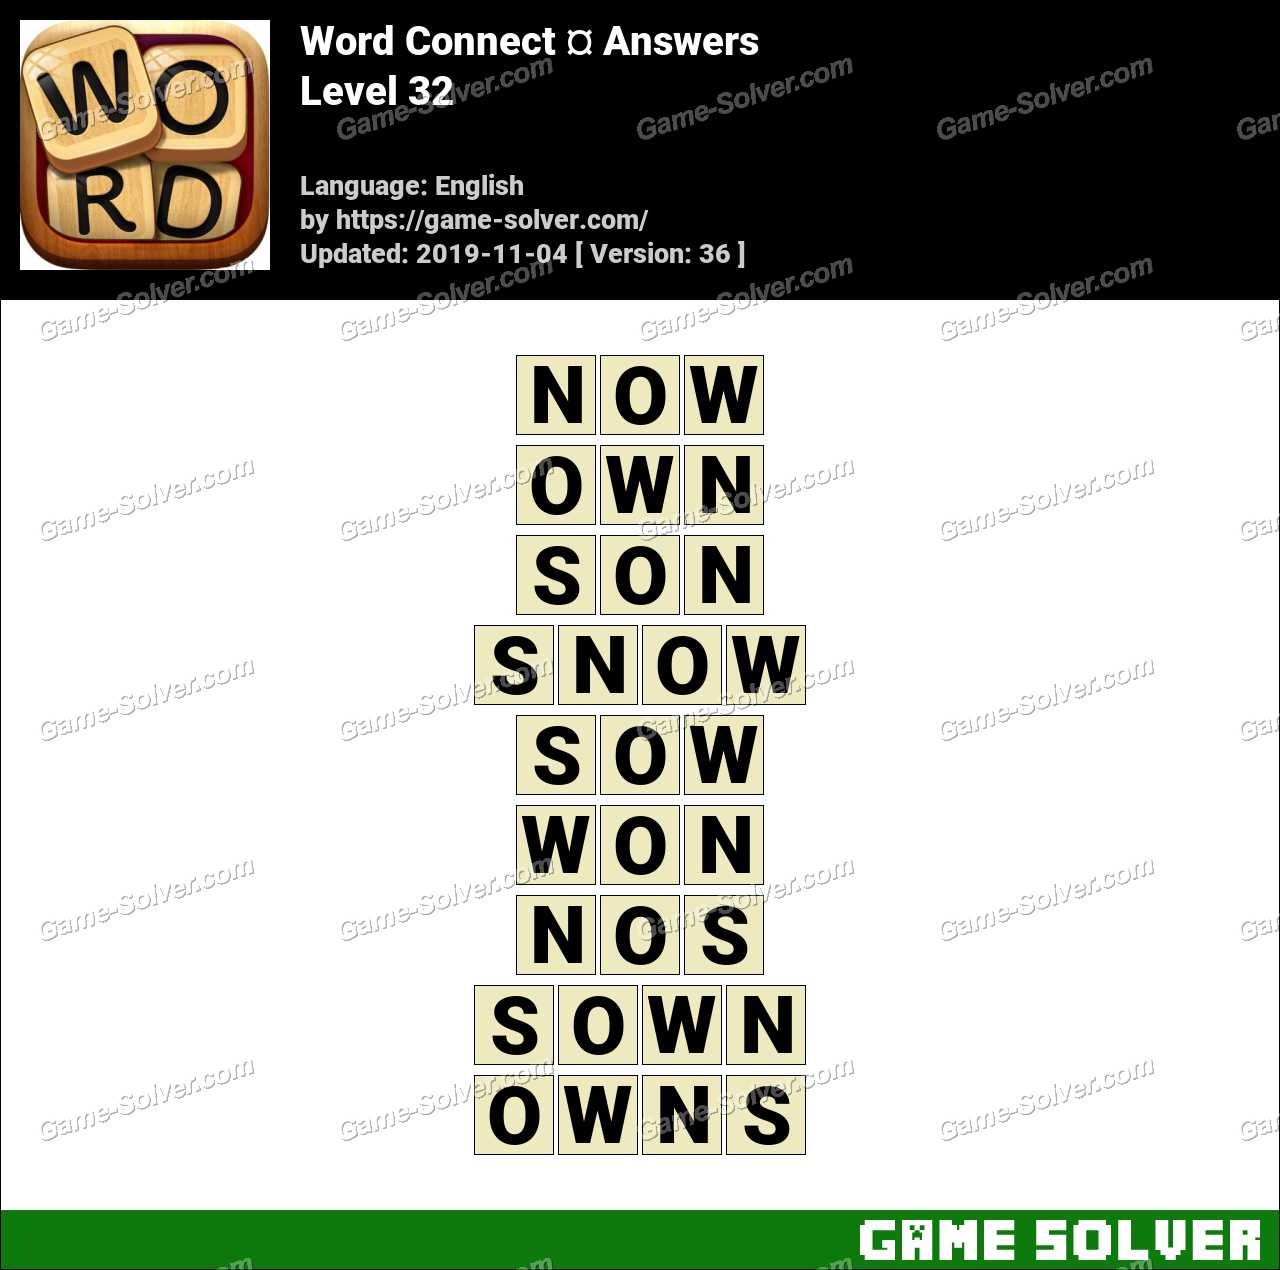 Word Connect Level 32 Answers